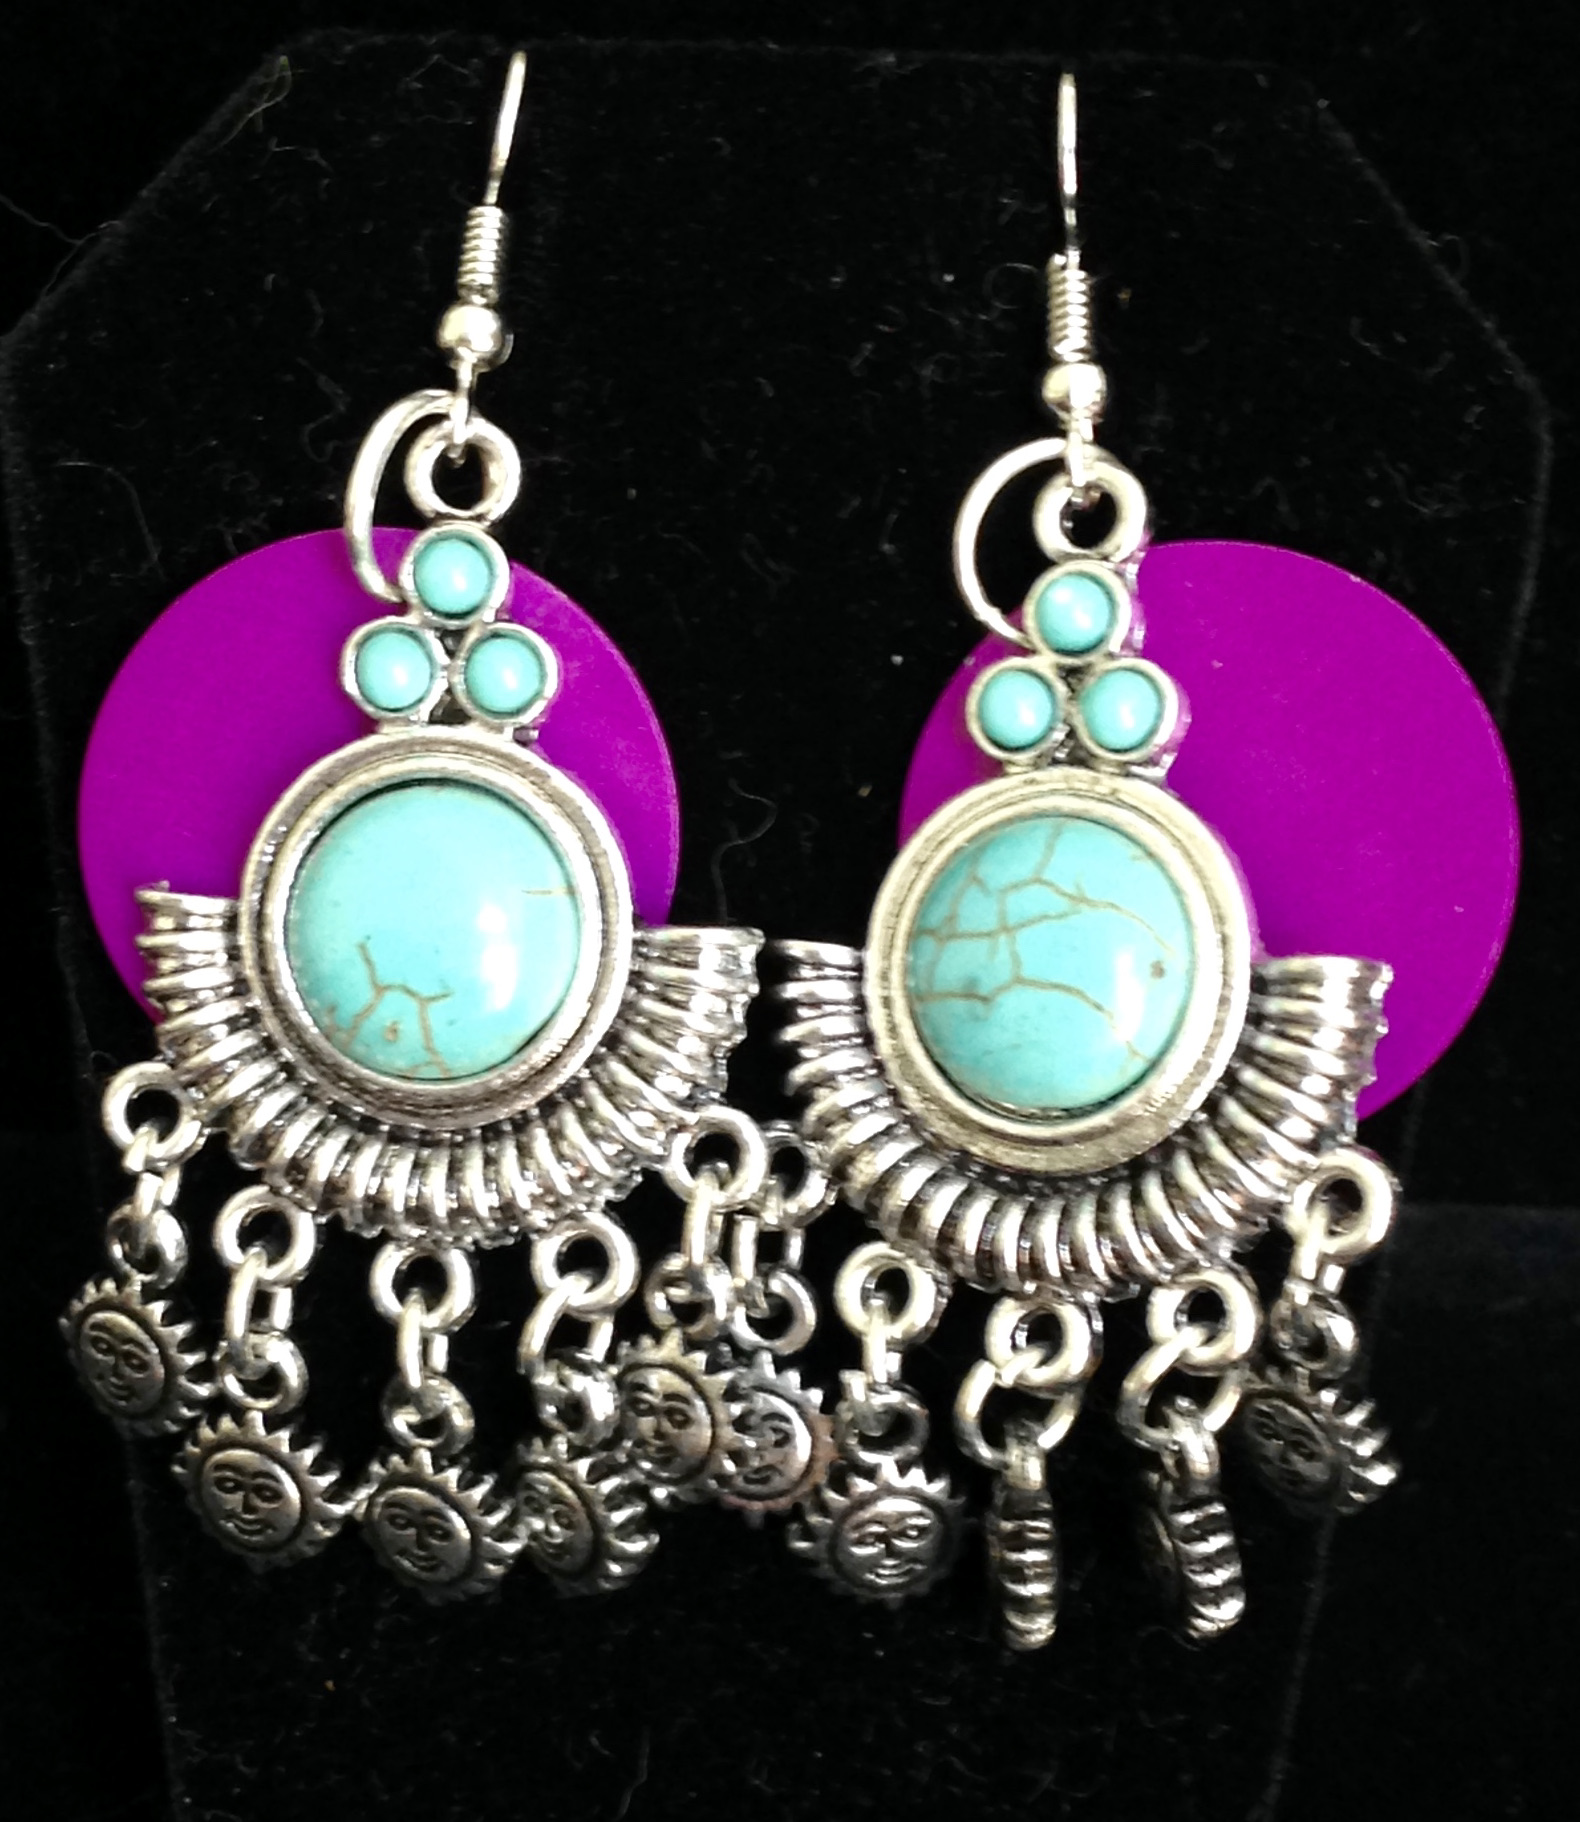 Magnesite, Energy Disks, and Suns Earrings